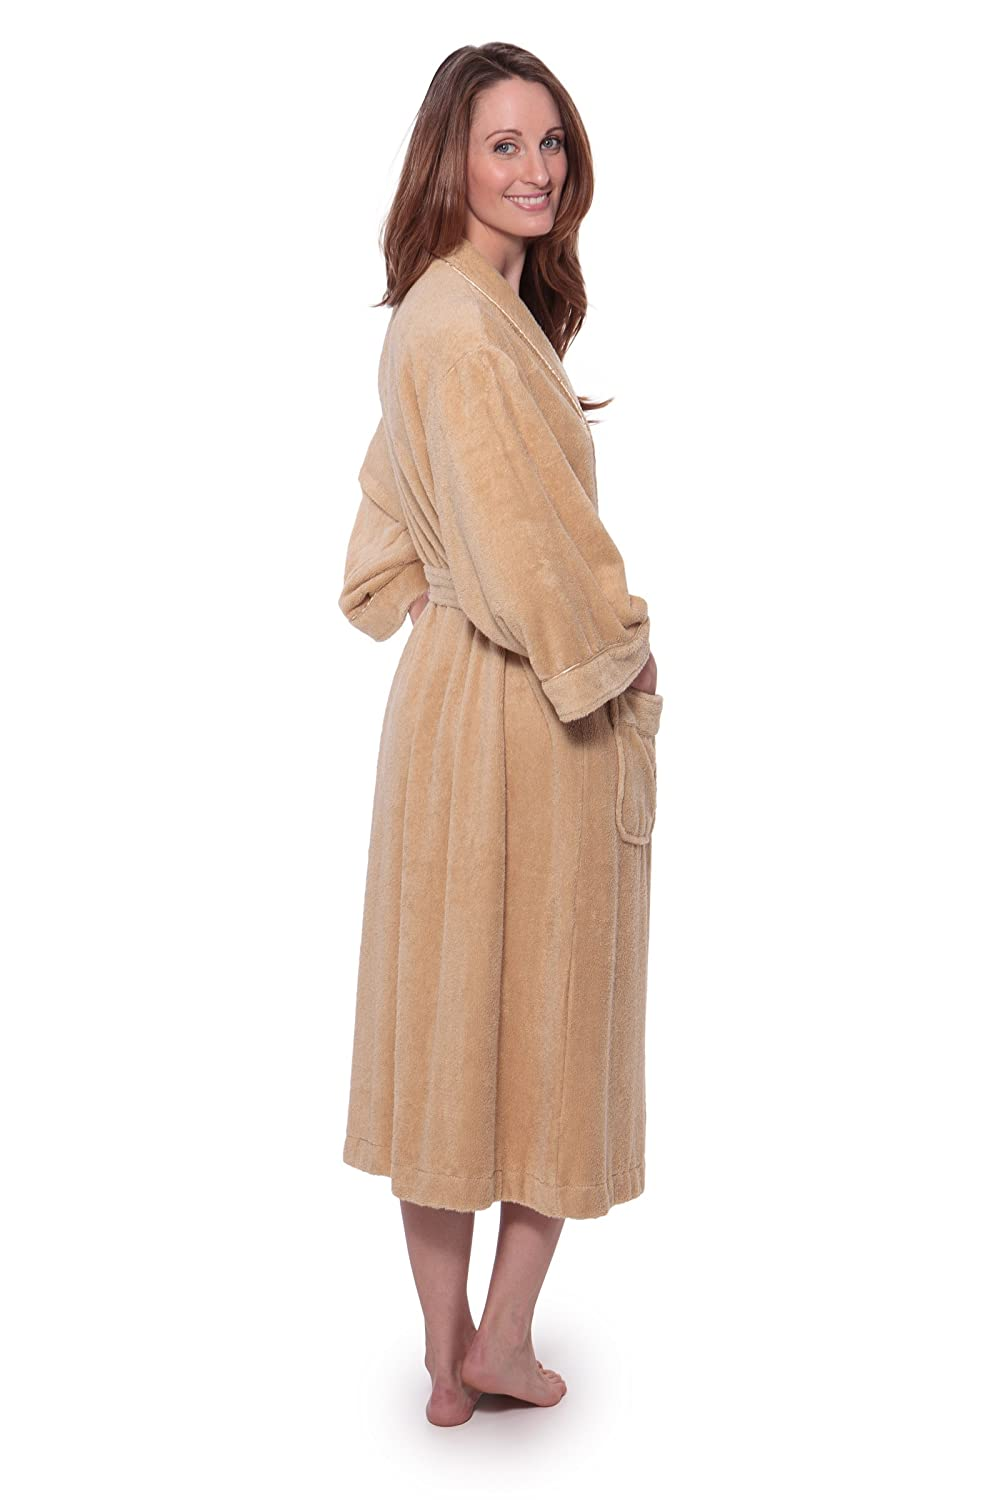 Women s Luxury Terry Cloth Bathrobe - Bamboo Viscose Robe by Texere  (Ecovaganza) at Amazon Women s Clothing store  cfd0ef16a